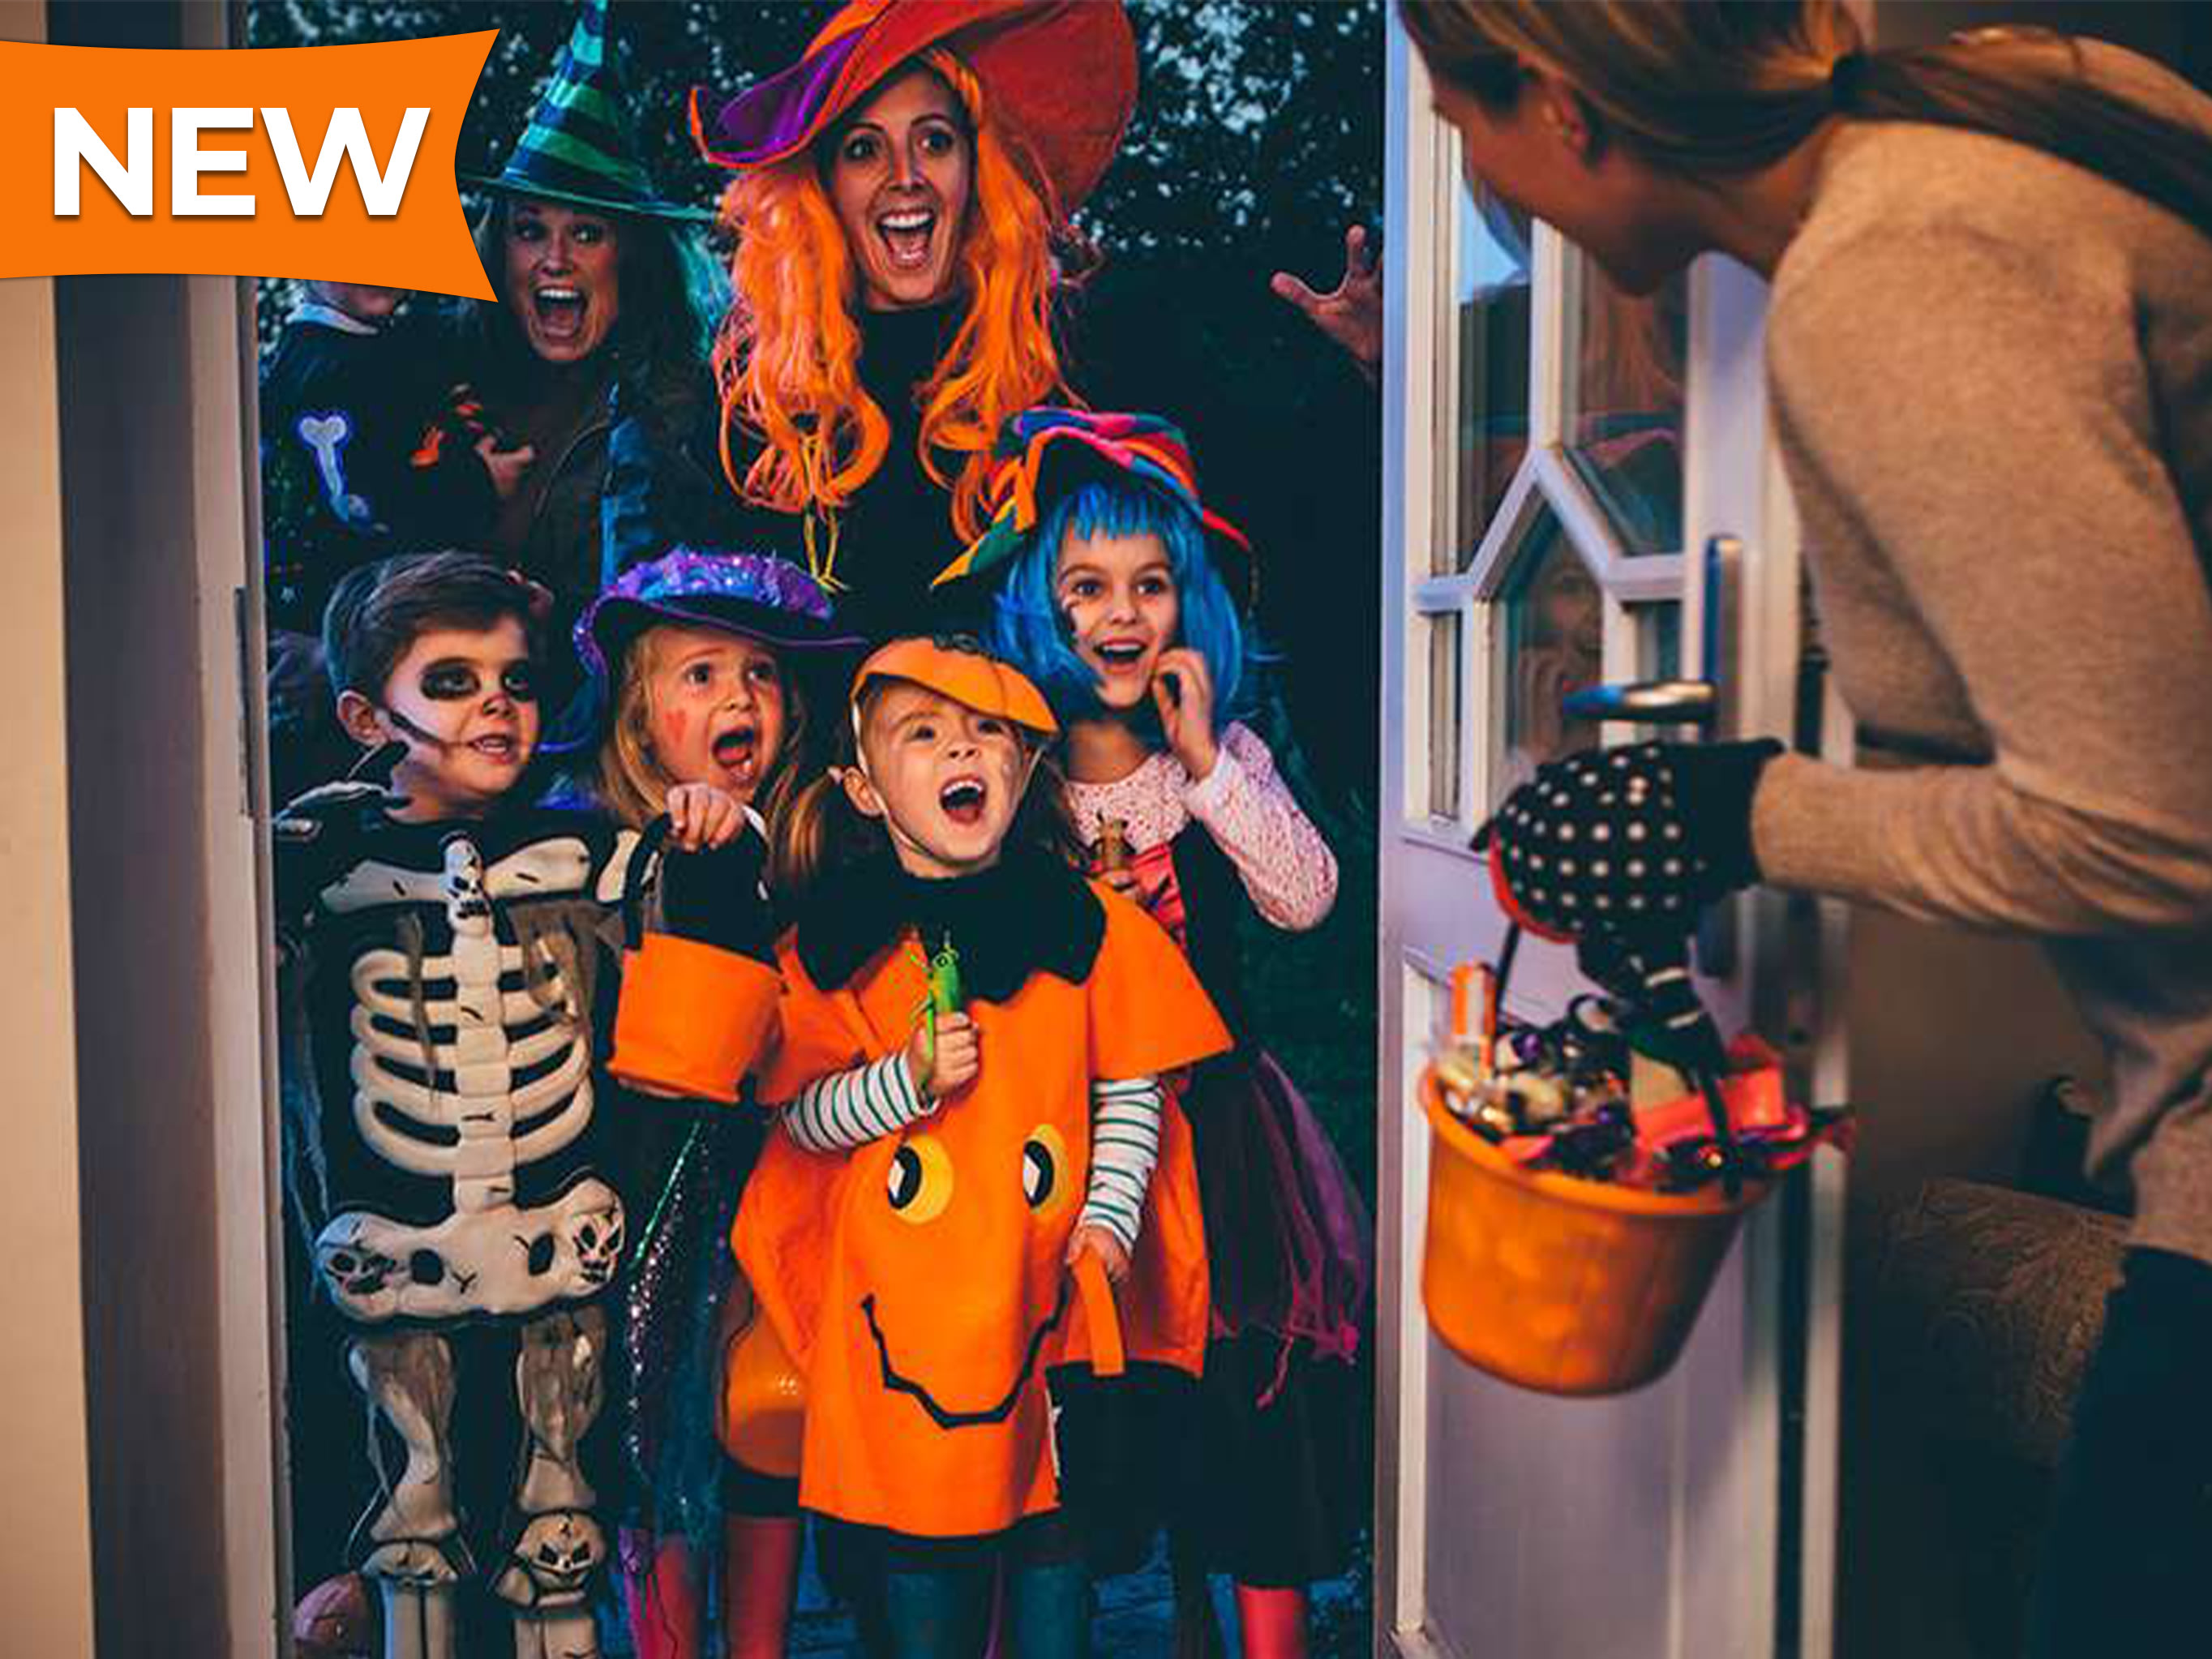 Children and their mothers in colorful costumes trick-or-treat on Halloween.